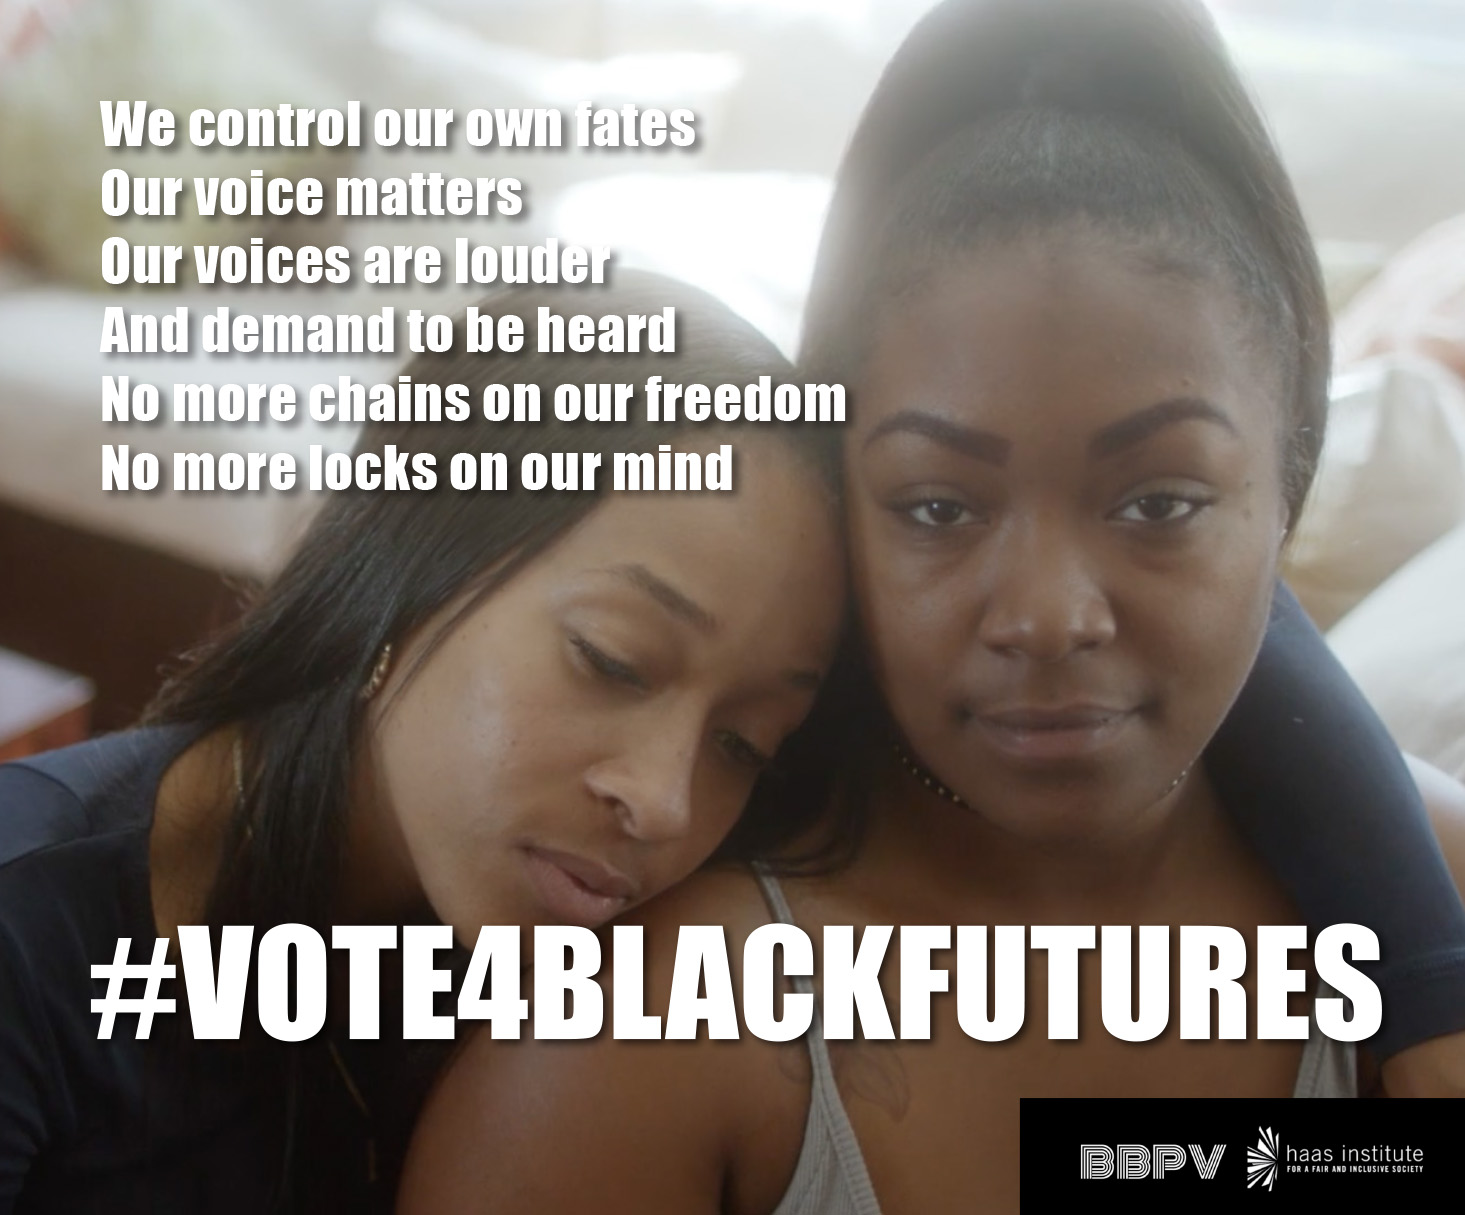 #Vote4BlackFutures video graphic - see full video at https://www.youtube.com/watch?v=Xyg5JAbAtlI&feature=youtu.be